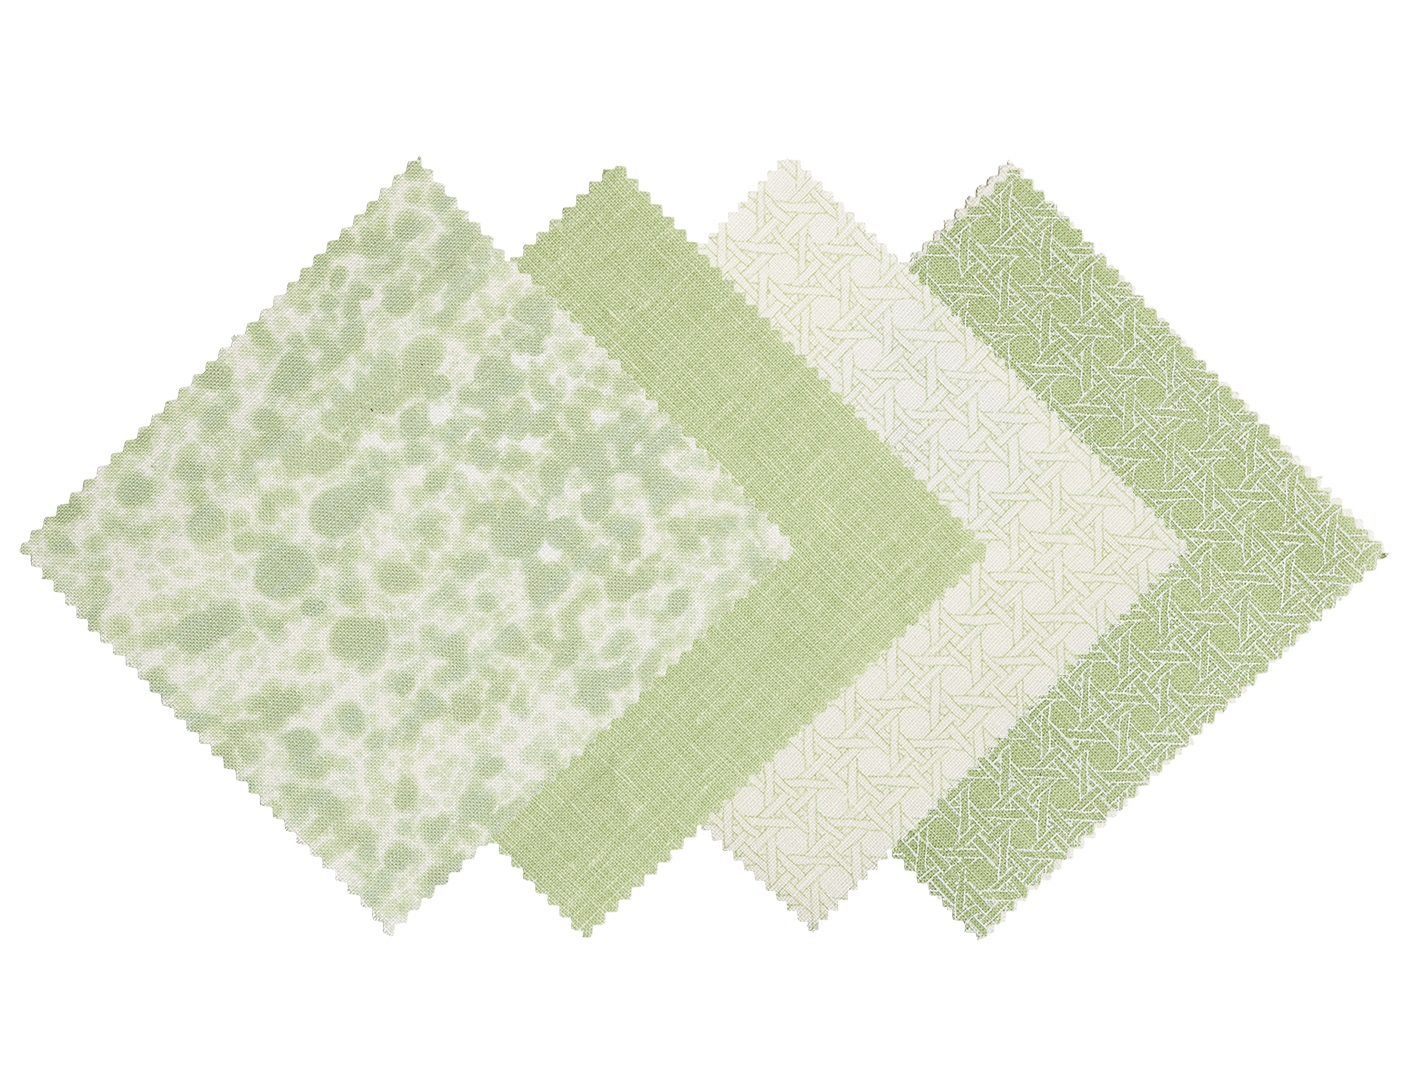 Aloe-greens-from-left-to-right-The-Speckled-collection-The-Plains-collection-The-Slatcane-Light-collection-and-Slatcane-Bold.p.jpg